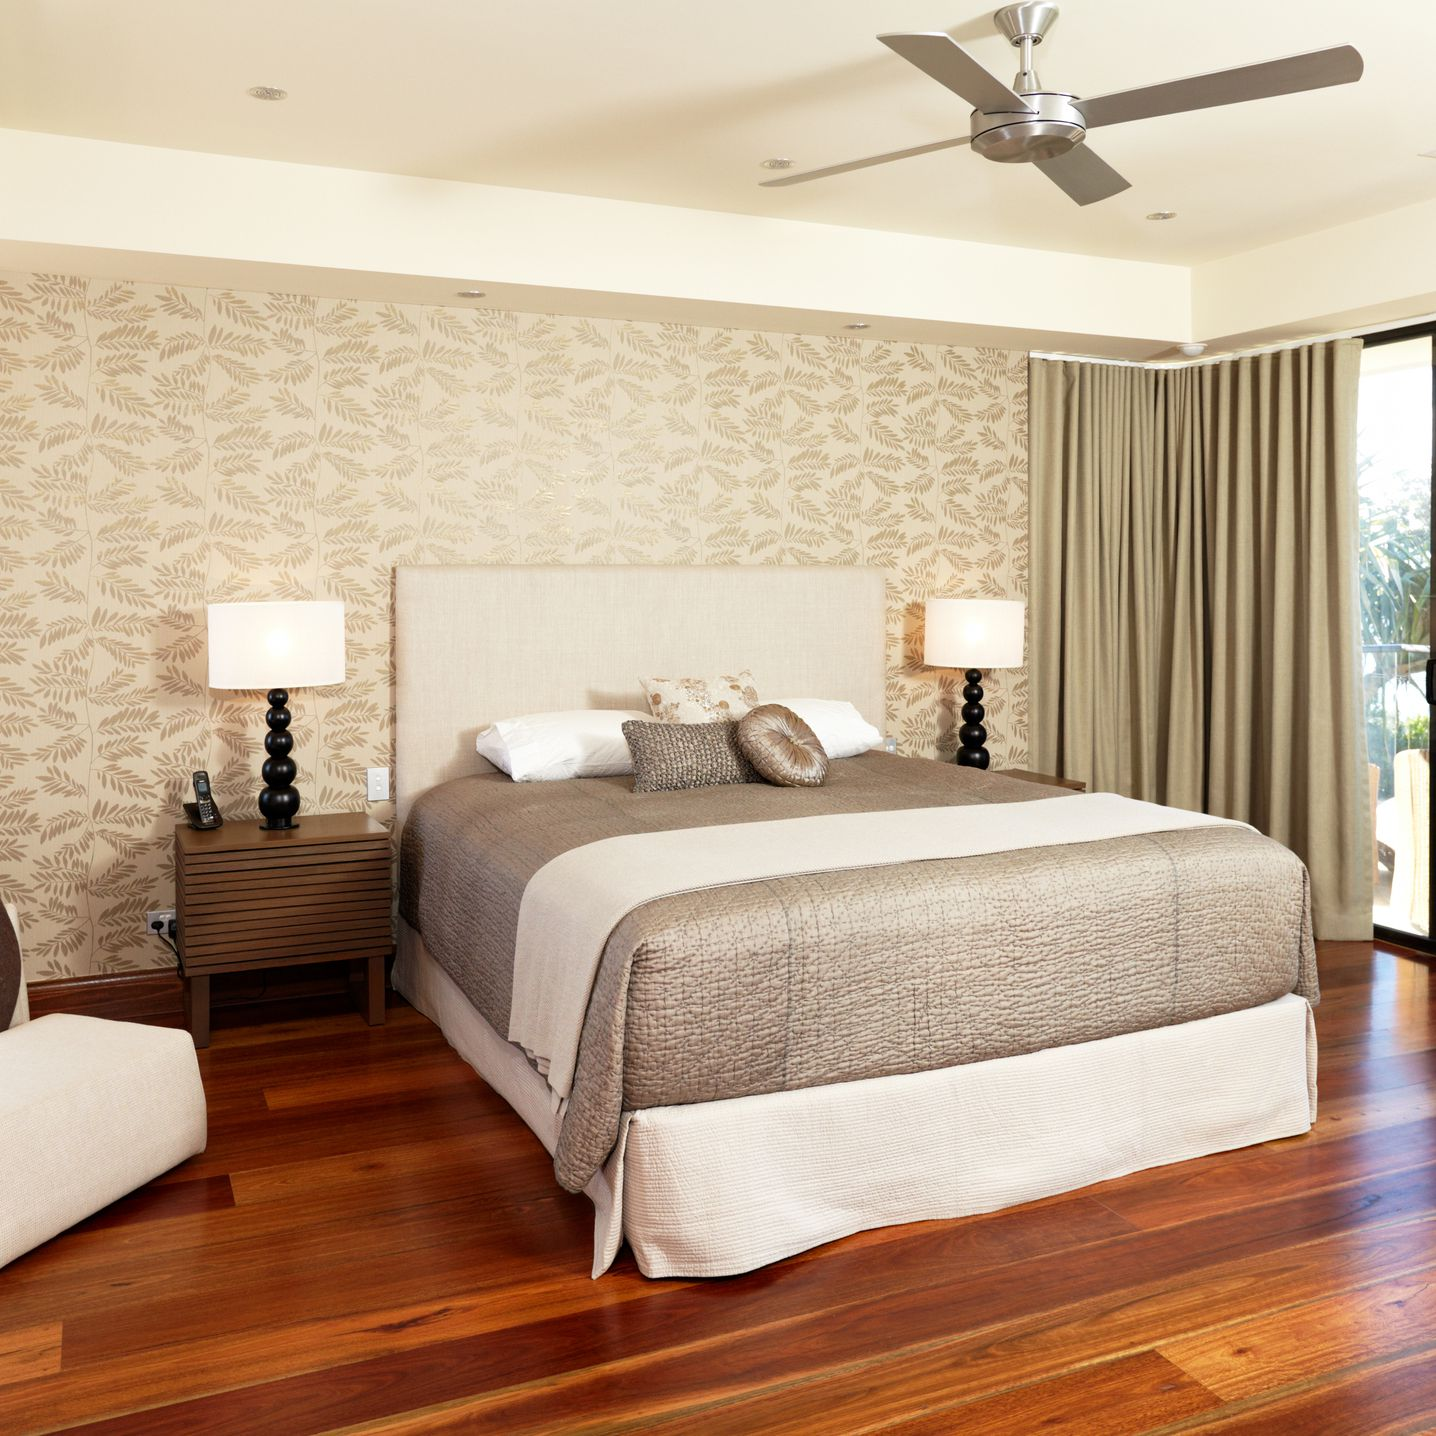 11 Steps On How To Deep Clean Your Bedroom